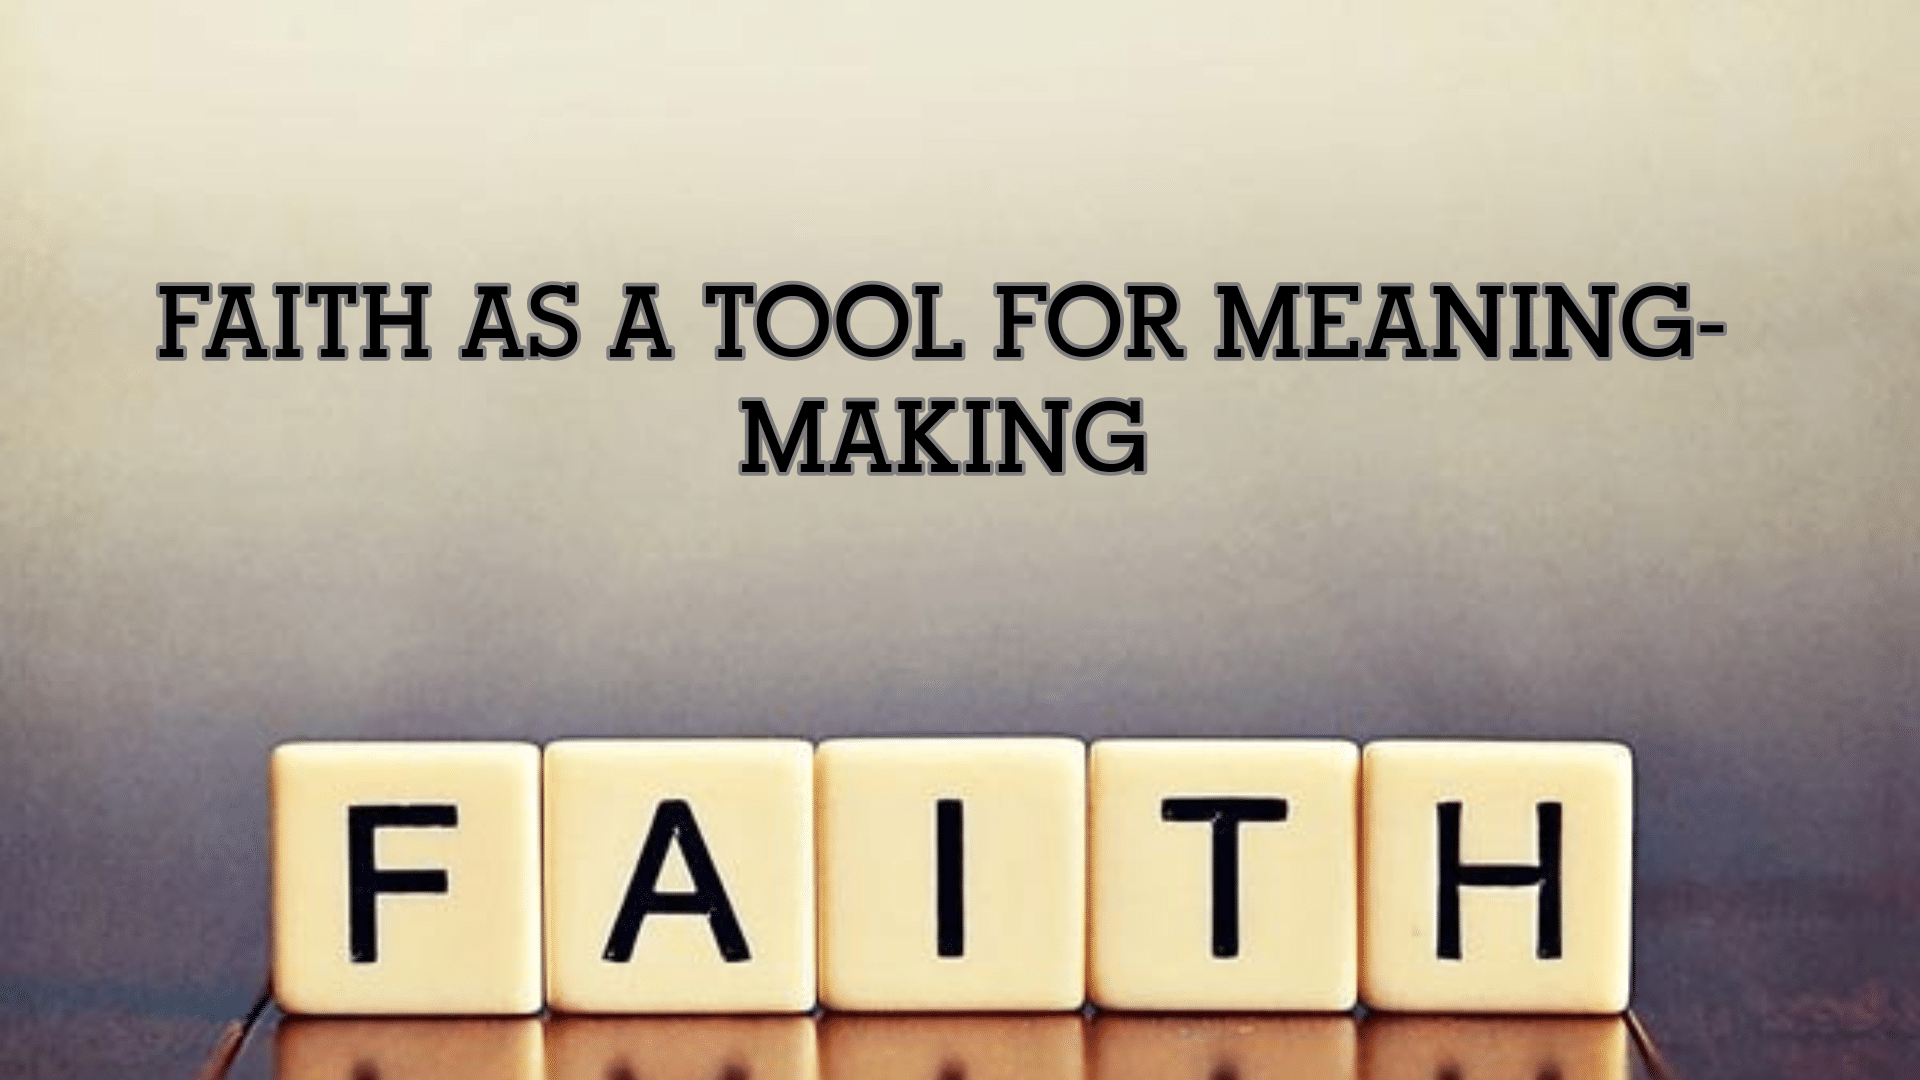 Faith as a Tool for Meaning-Making